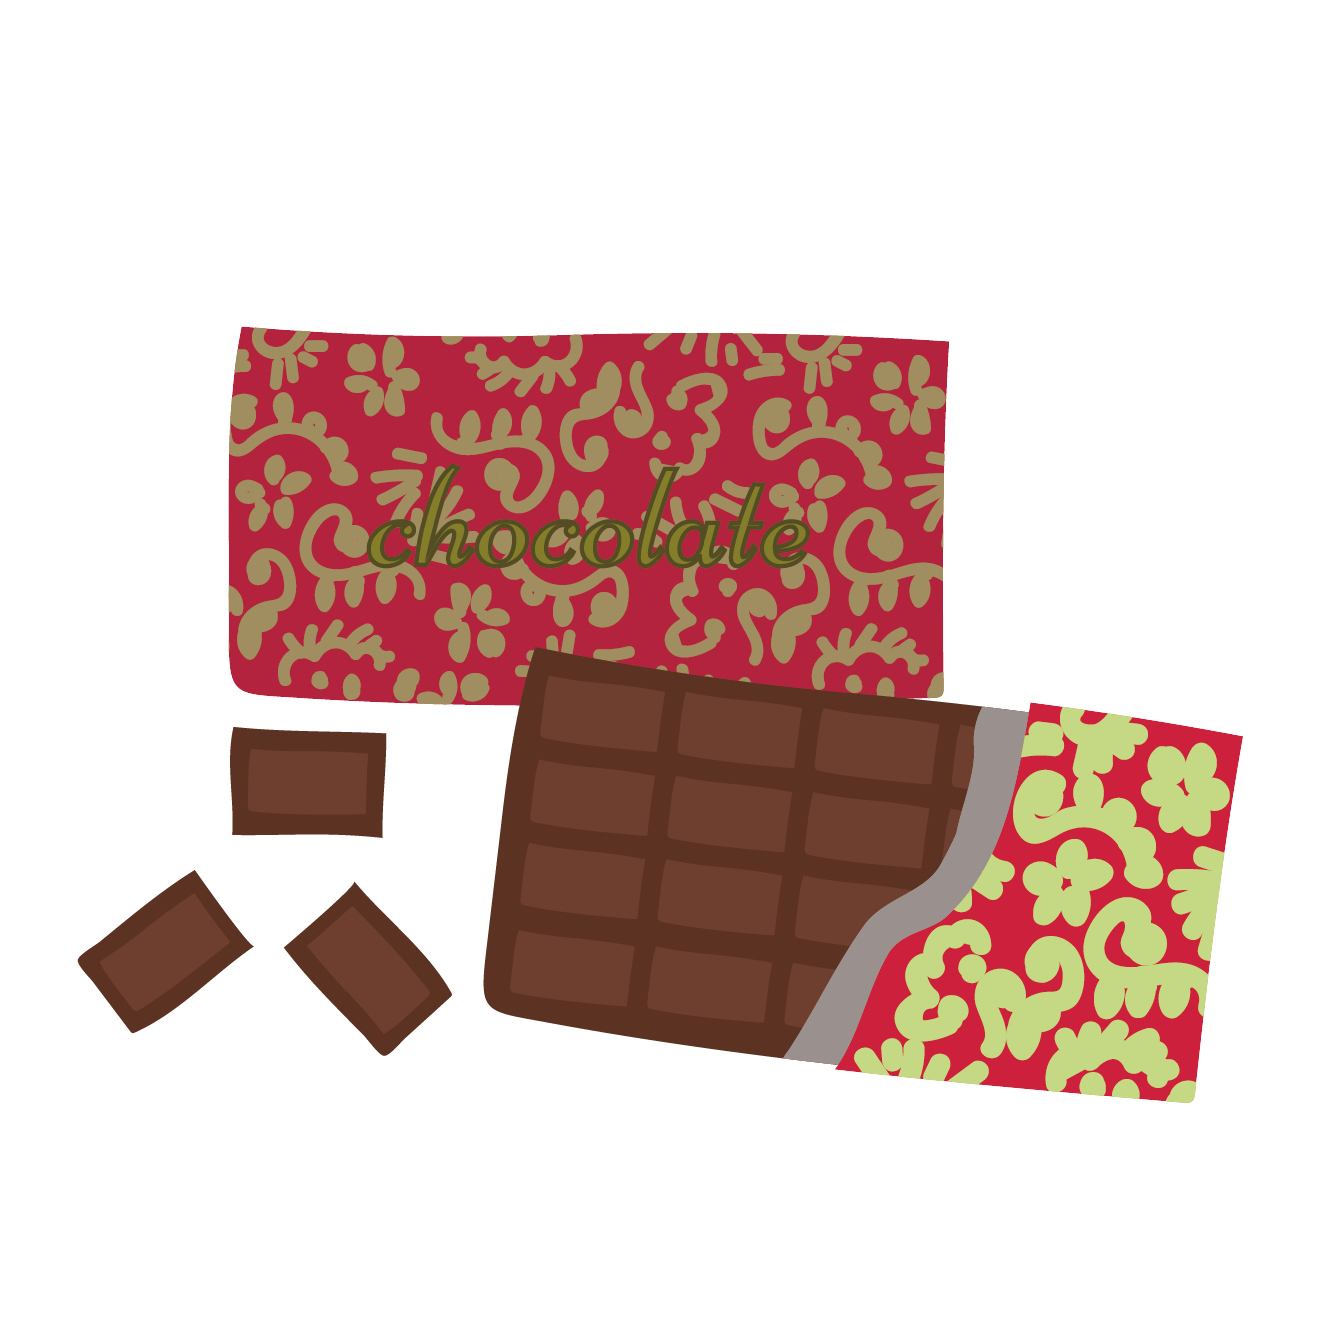 chocolate-01.png